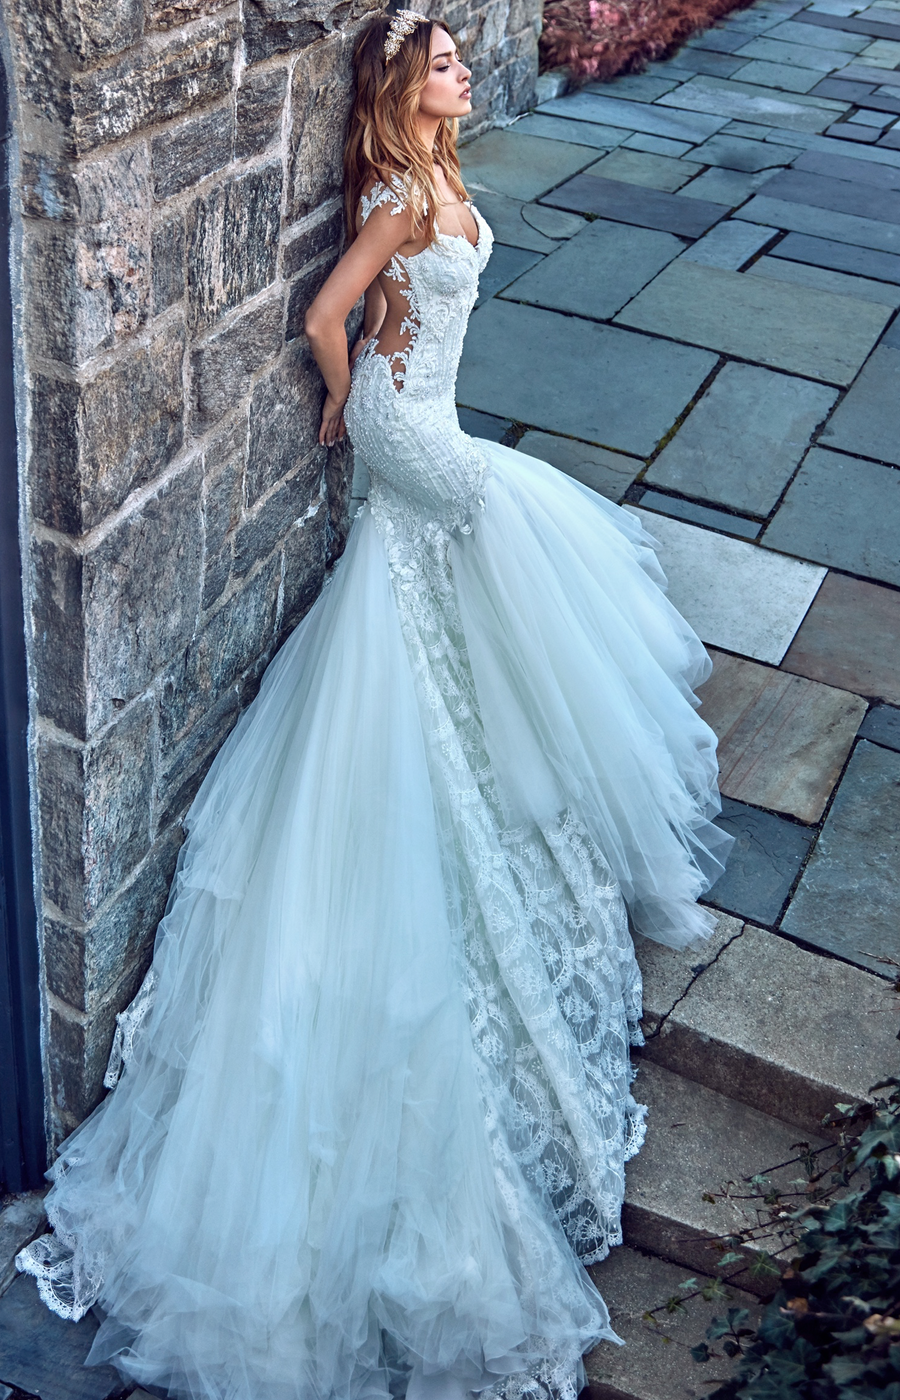 Galia lahav le secret royal ms elle wedding dress pinterest galia lahav le secret royal ms elle junglespirit Images